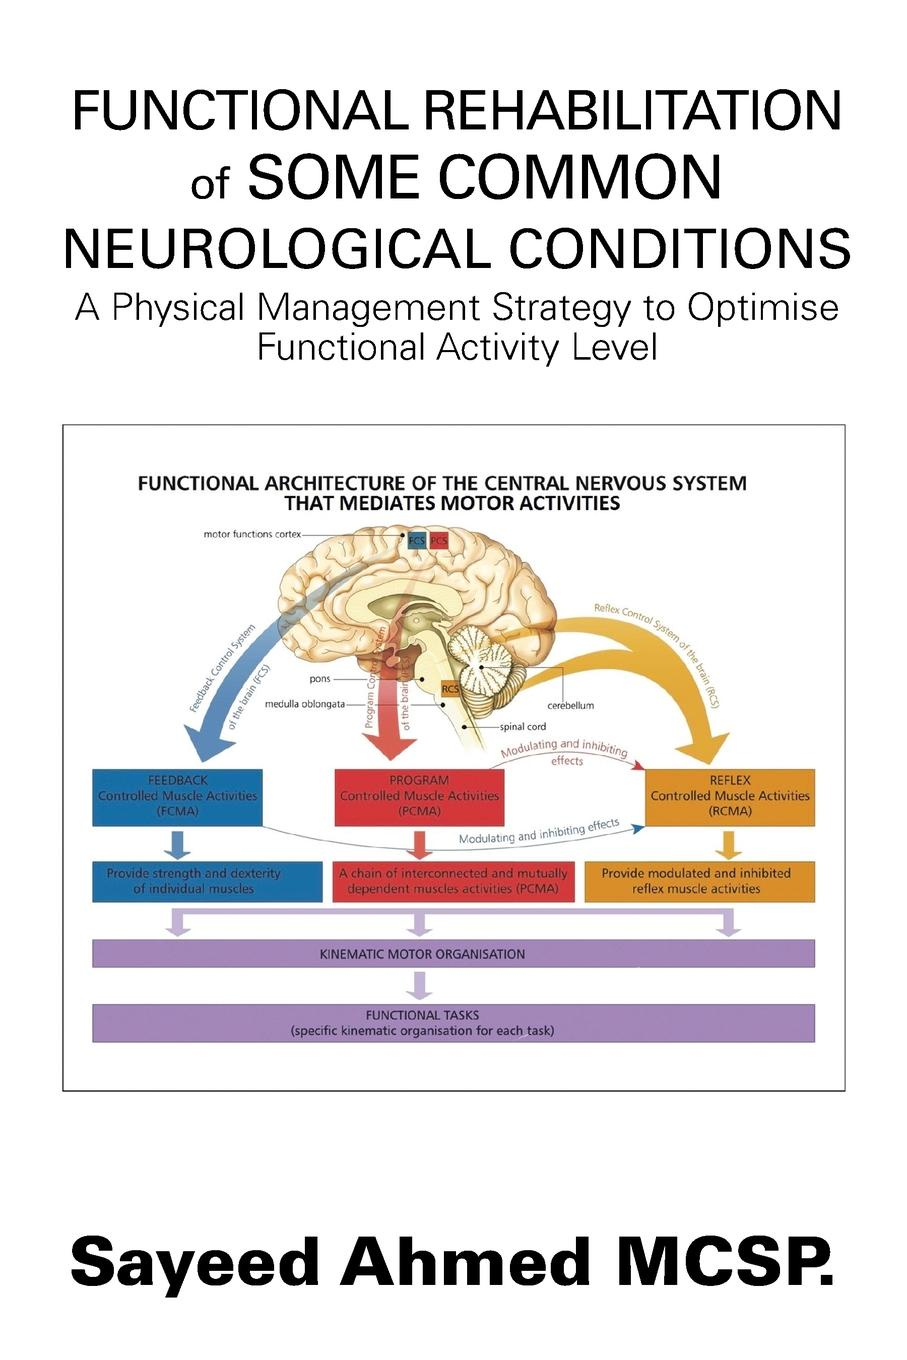 Фото - Sayeed Ahmed MCSP. Functional Rehabilitation of Some Common Neurological Conditions. A Physical Management Strategy to Optimise Functional Activity Level deming m elen landscape architectural research inquiry strategy design